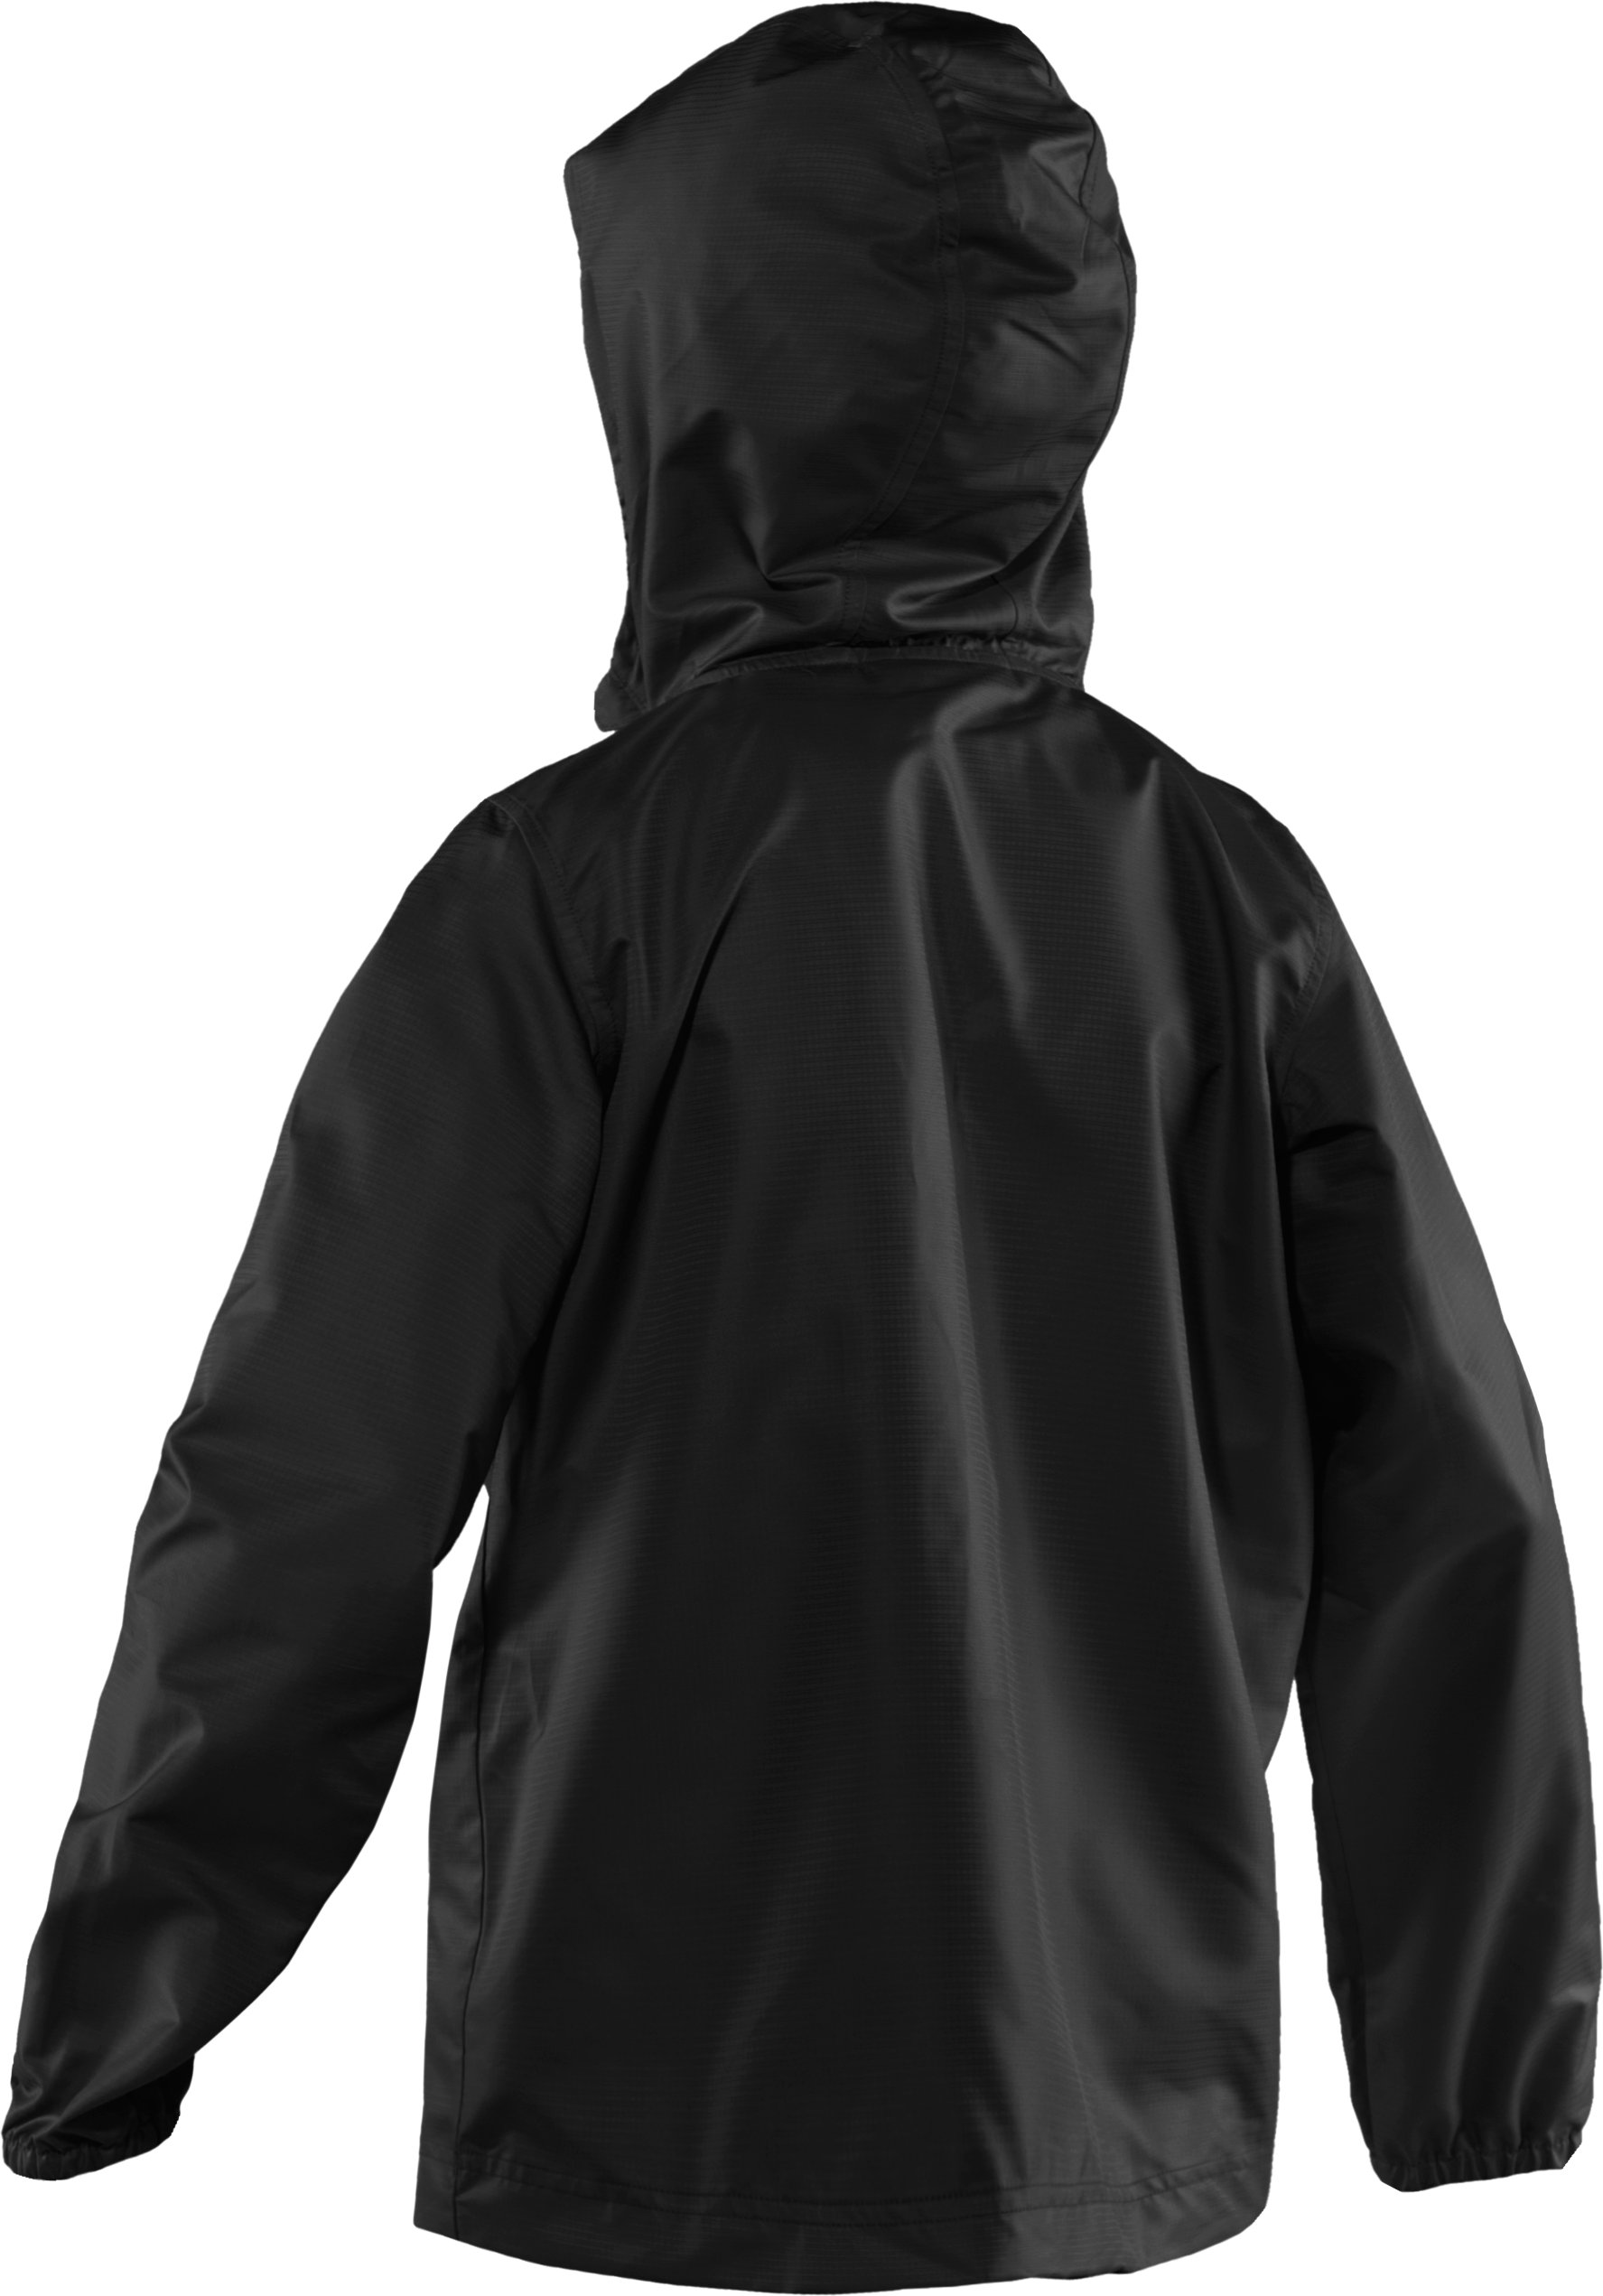 Boys' Tideburst Jacket, Black